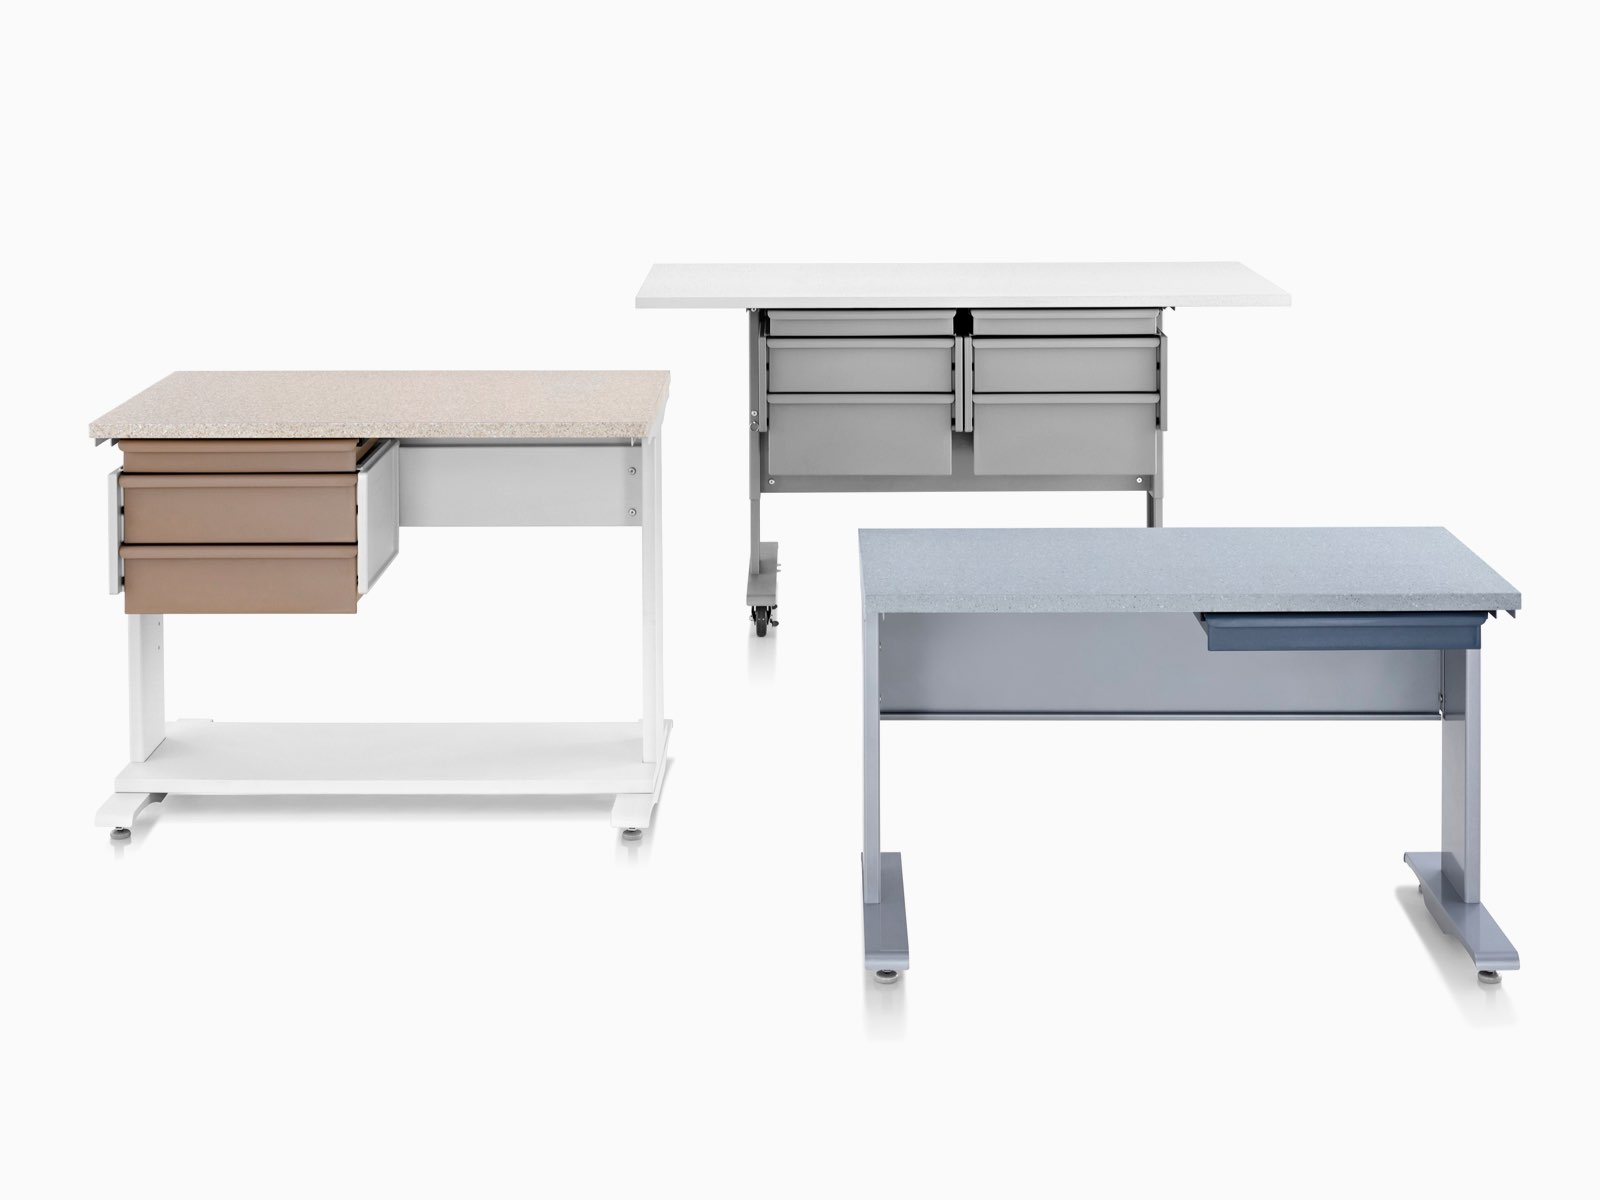 Three Co/Struc System lab work tables in various configurations.